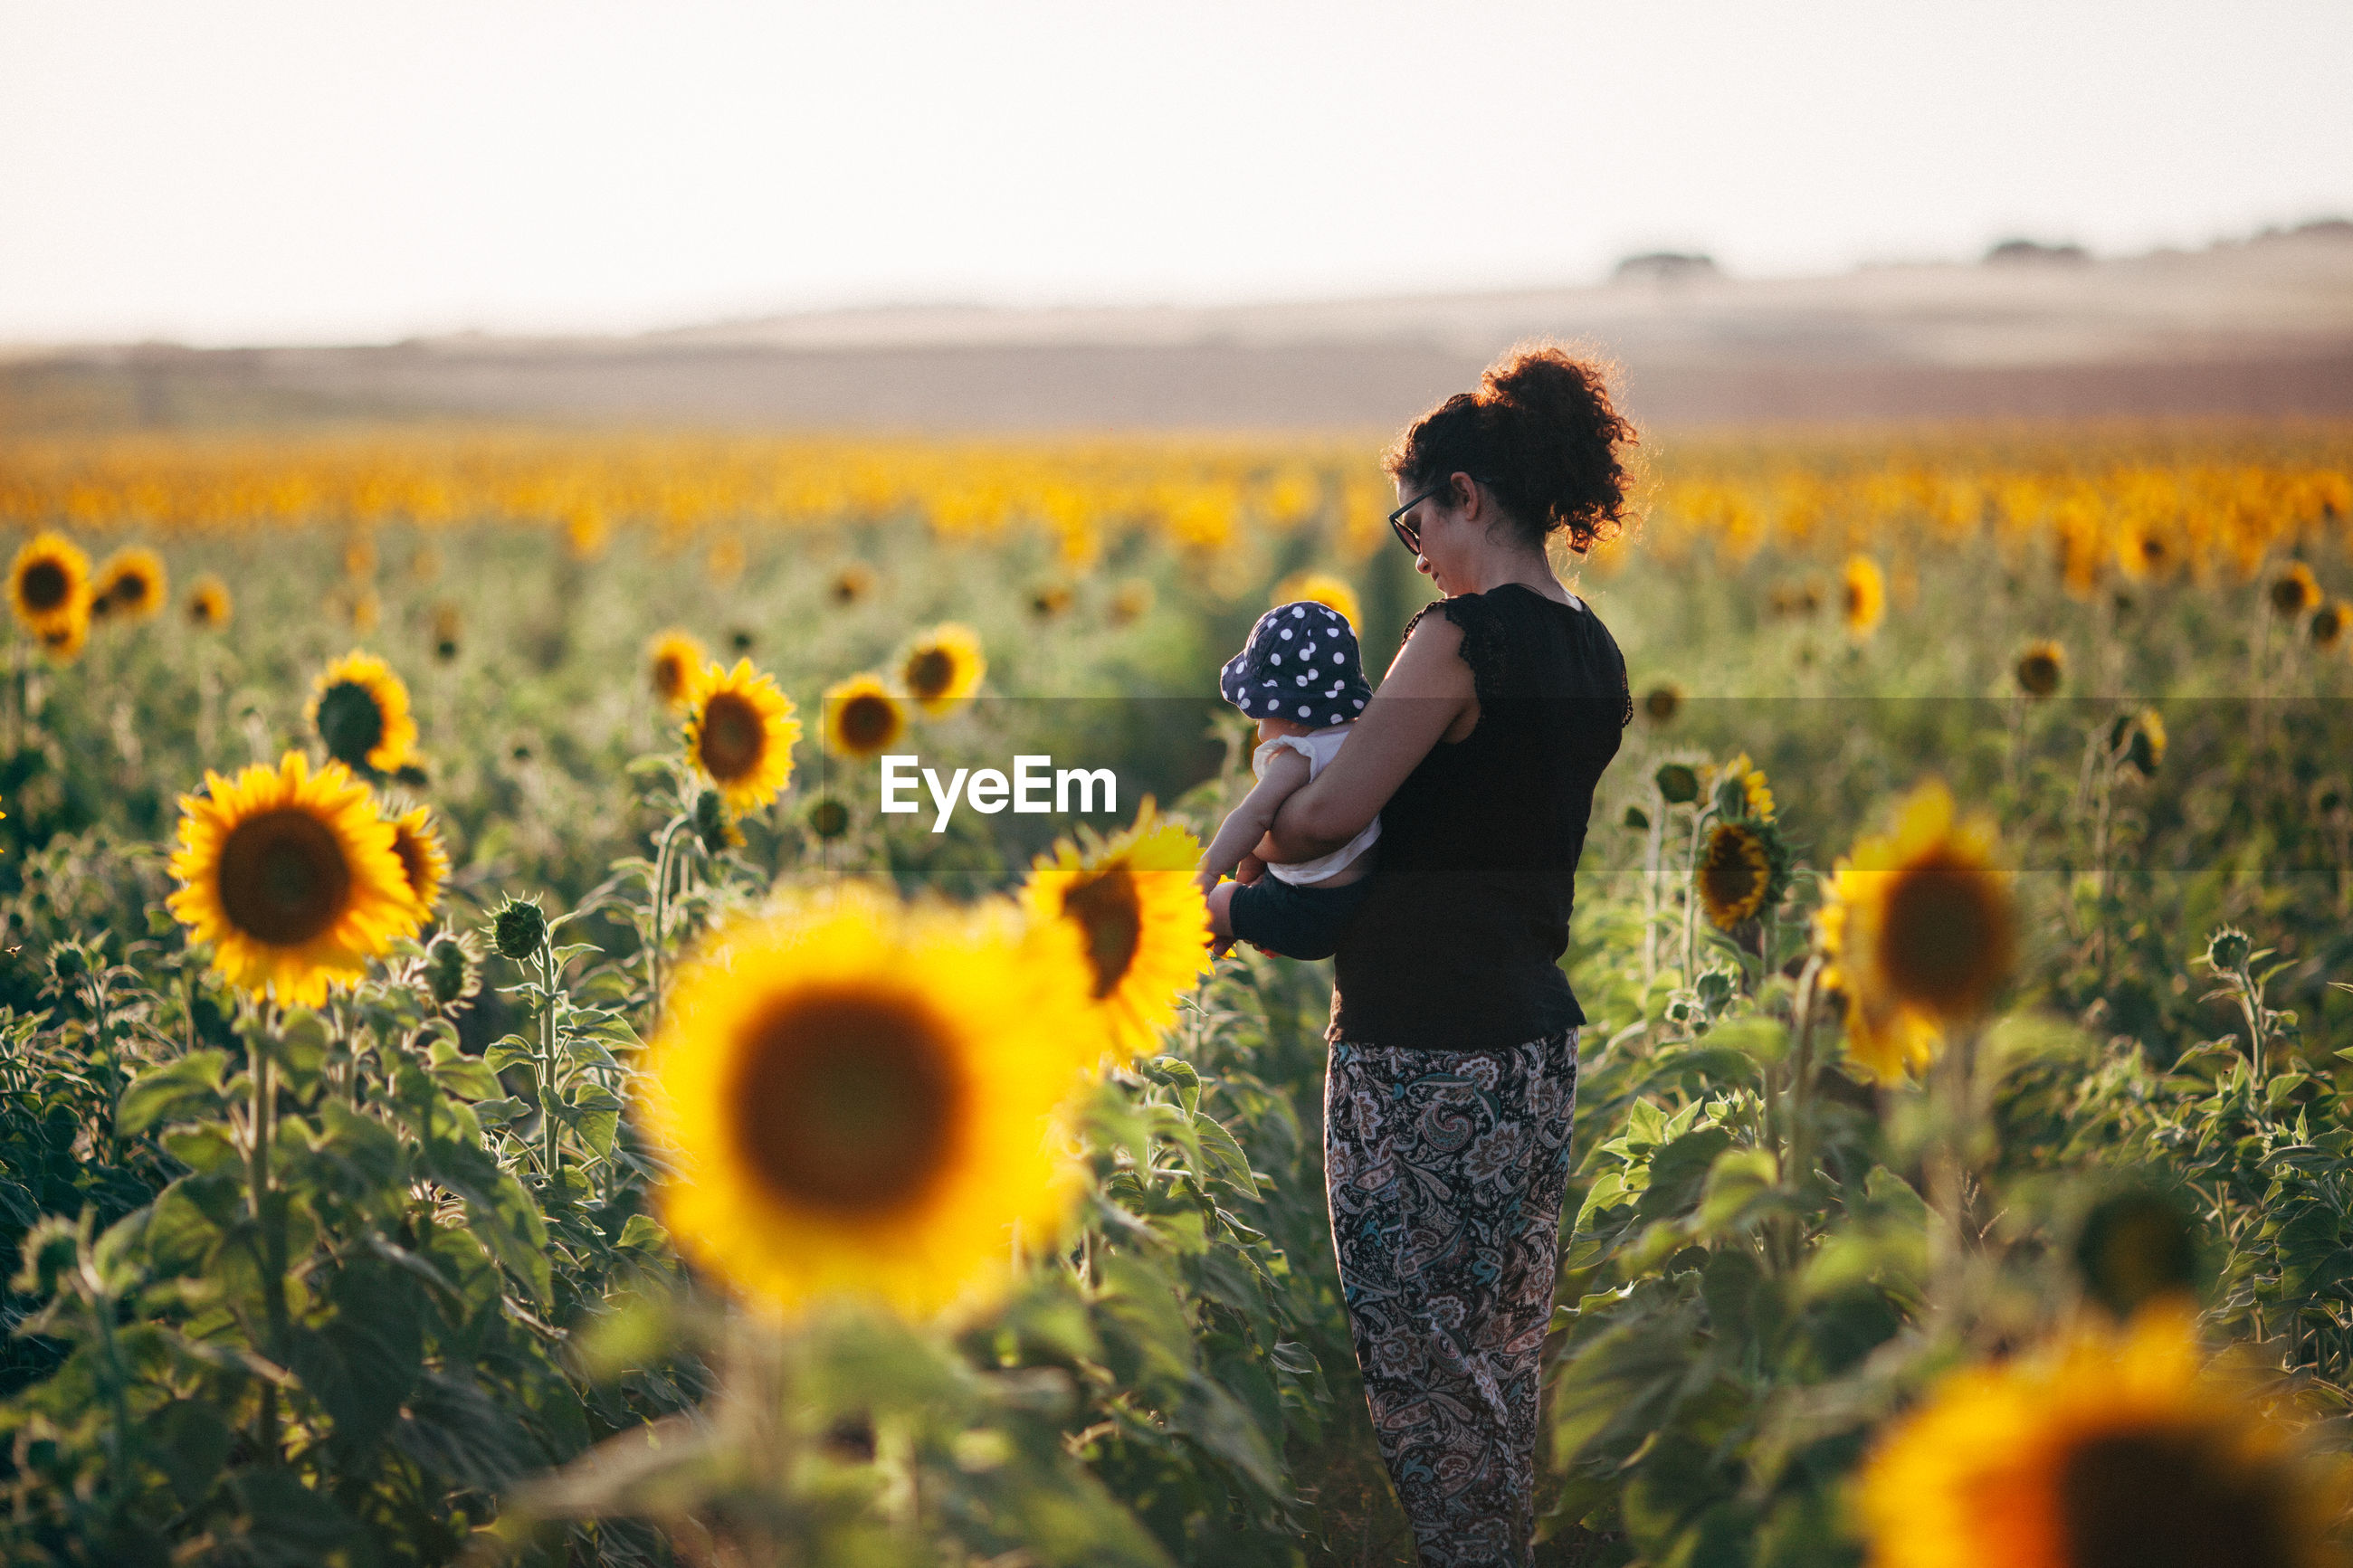 Side view of mother carrying daughter while standing amidst sunflowers in field against sky